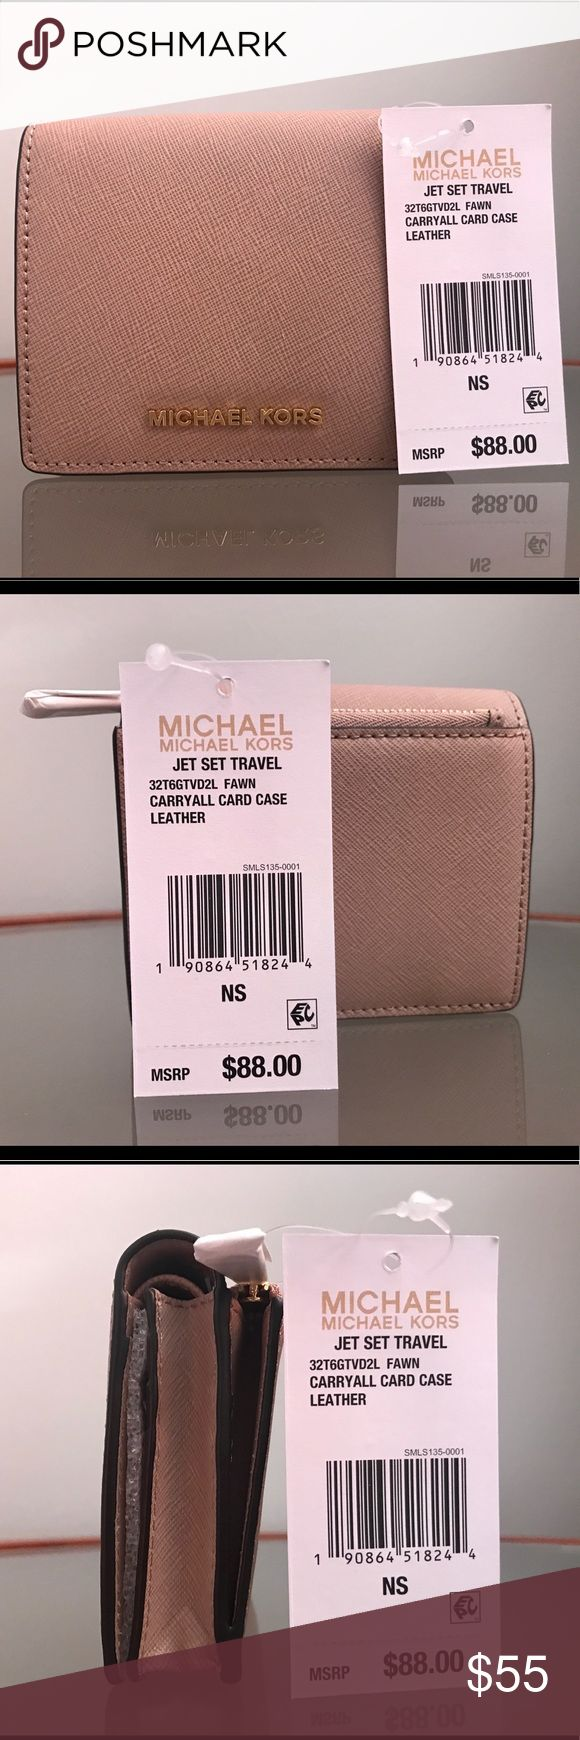 """$88 NEW MICHAEL KORS JET SET TRAVEL  CARD CASE Measurements: 4-1/4""""W x 3-3/4""""H x 1-1/4""""D Color: Fawn with Gold Tone Hardware Interior features: lining, 7 card slots, 1 ID window, 1 gusseted pocket and 1 bill fold Snap closure Exterior features gold-tone hardware, logo plaque and 1 back zip pocket Saffiano leather; lining: polyester Retail price: $88.00 before tax 100% Brand New(Authentic) Michael Kors Bags Wallets"""